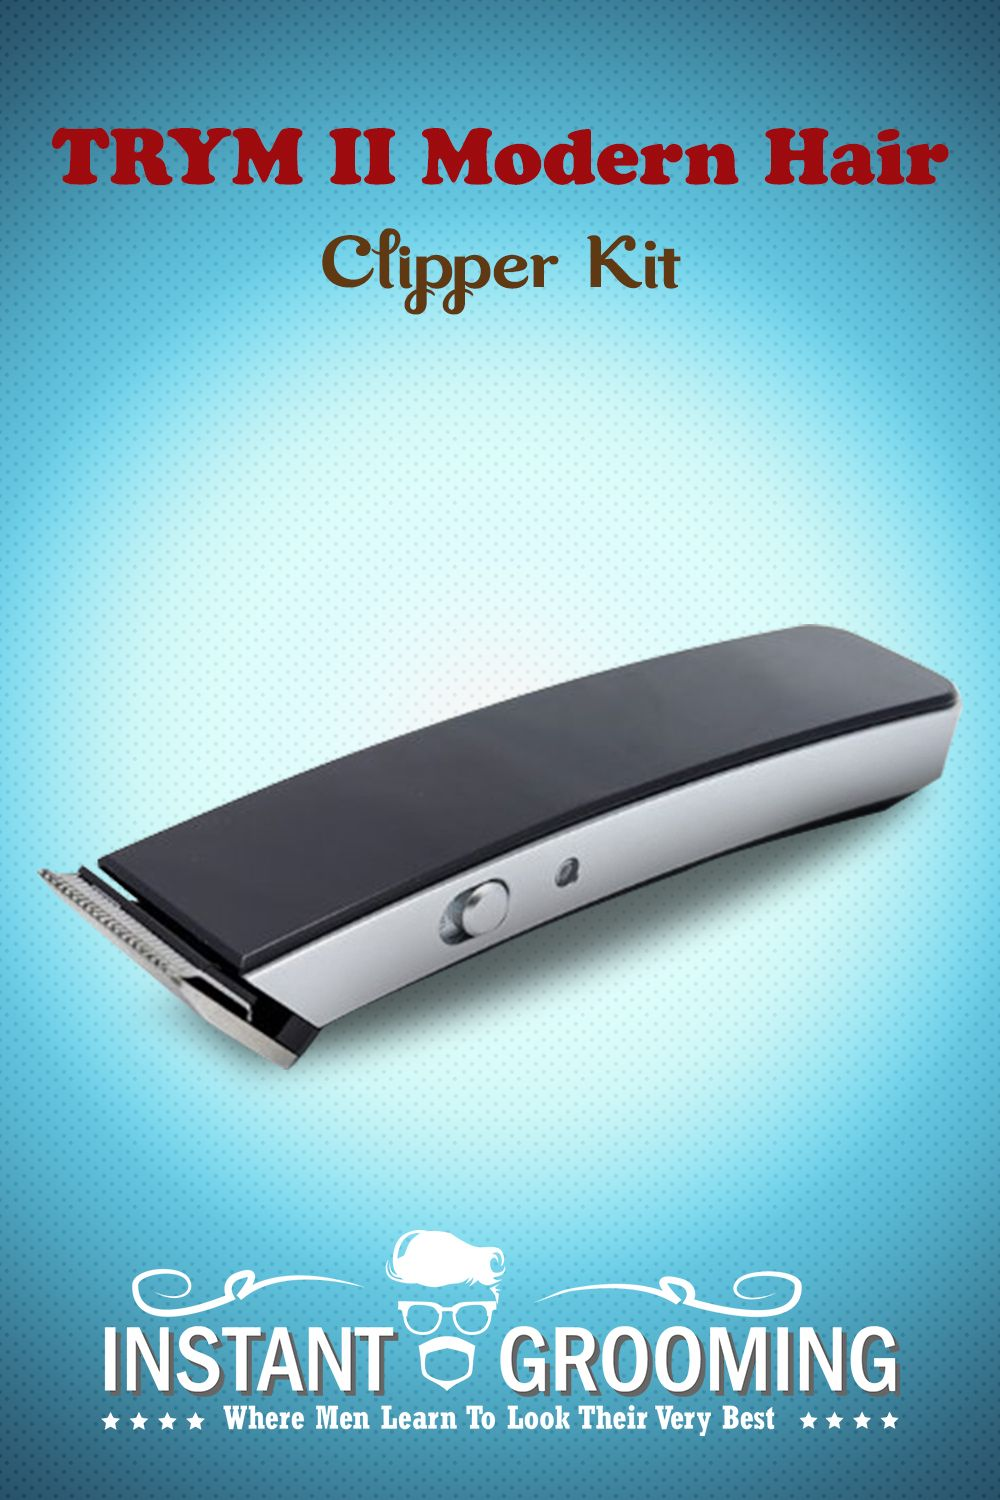 Top 10 Hair Clippers June 2020 Reviews Buyers Guide Instant Grooming Hair Clippers Cool Hairstyles Best Clippers For Men